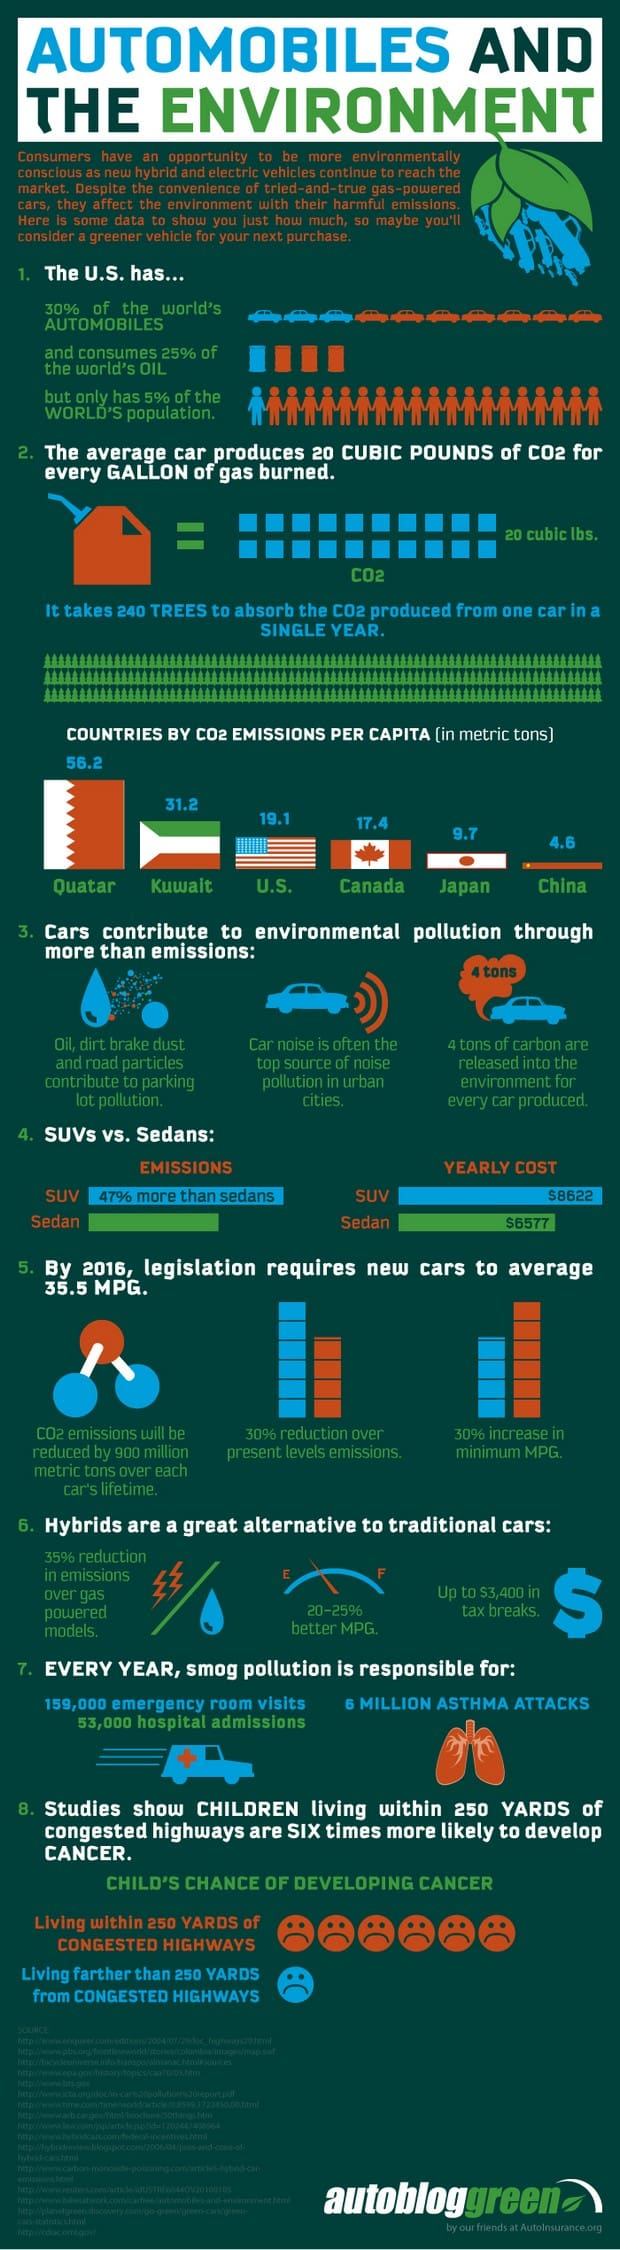 automobiles and environment infographic